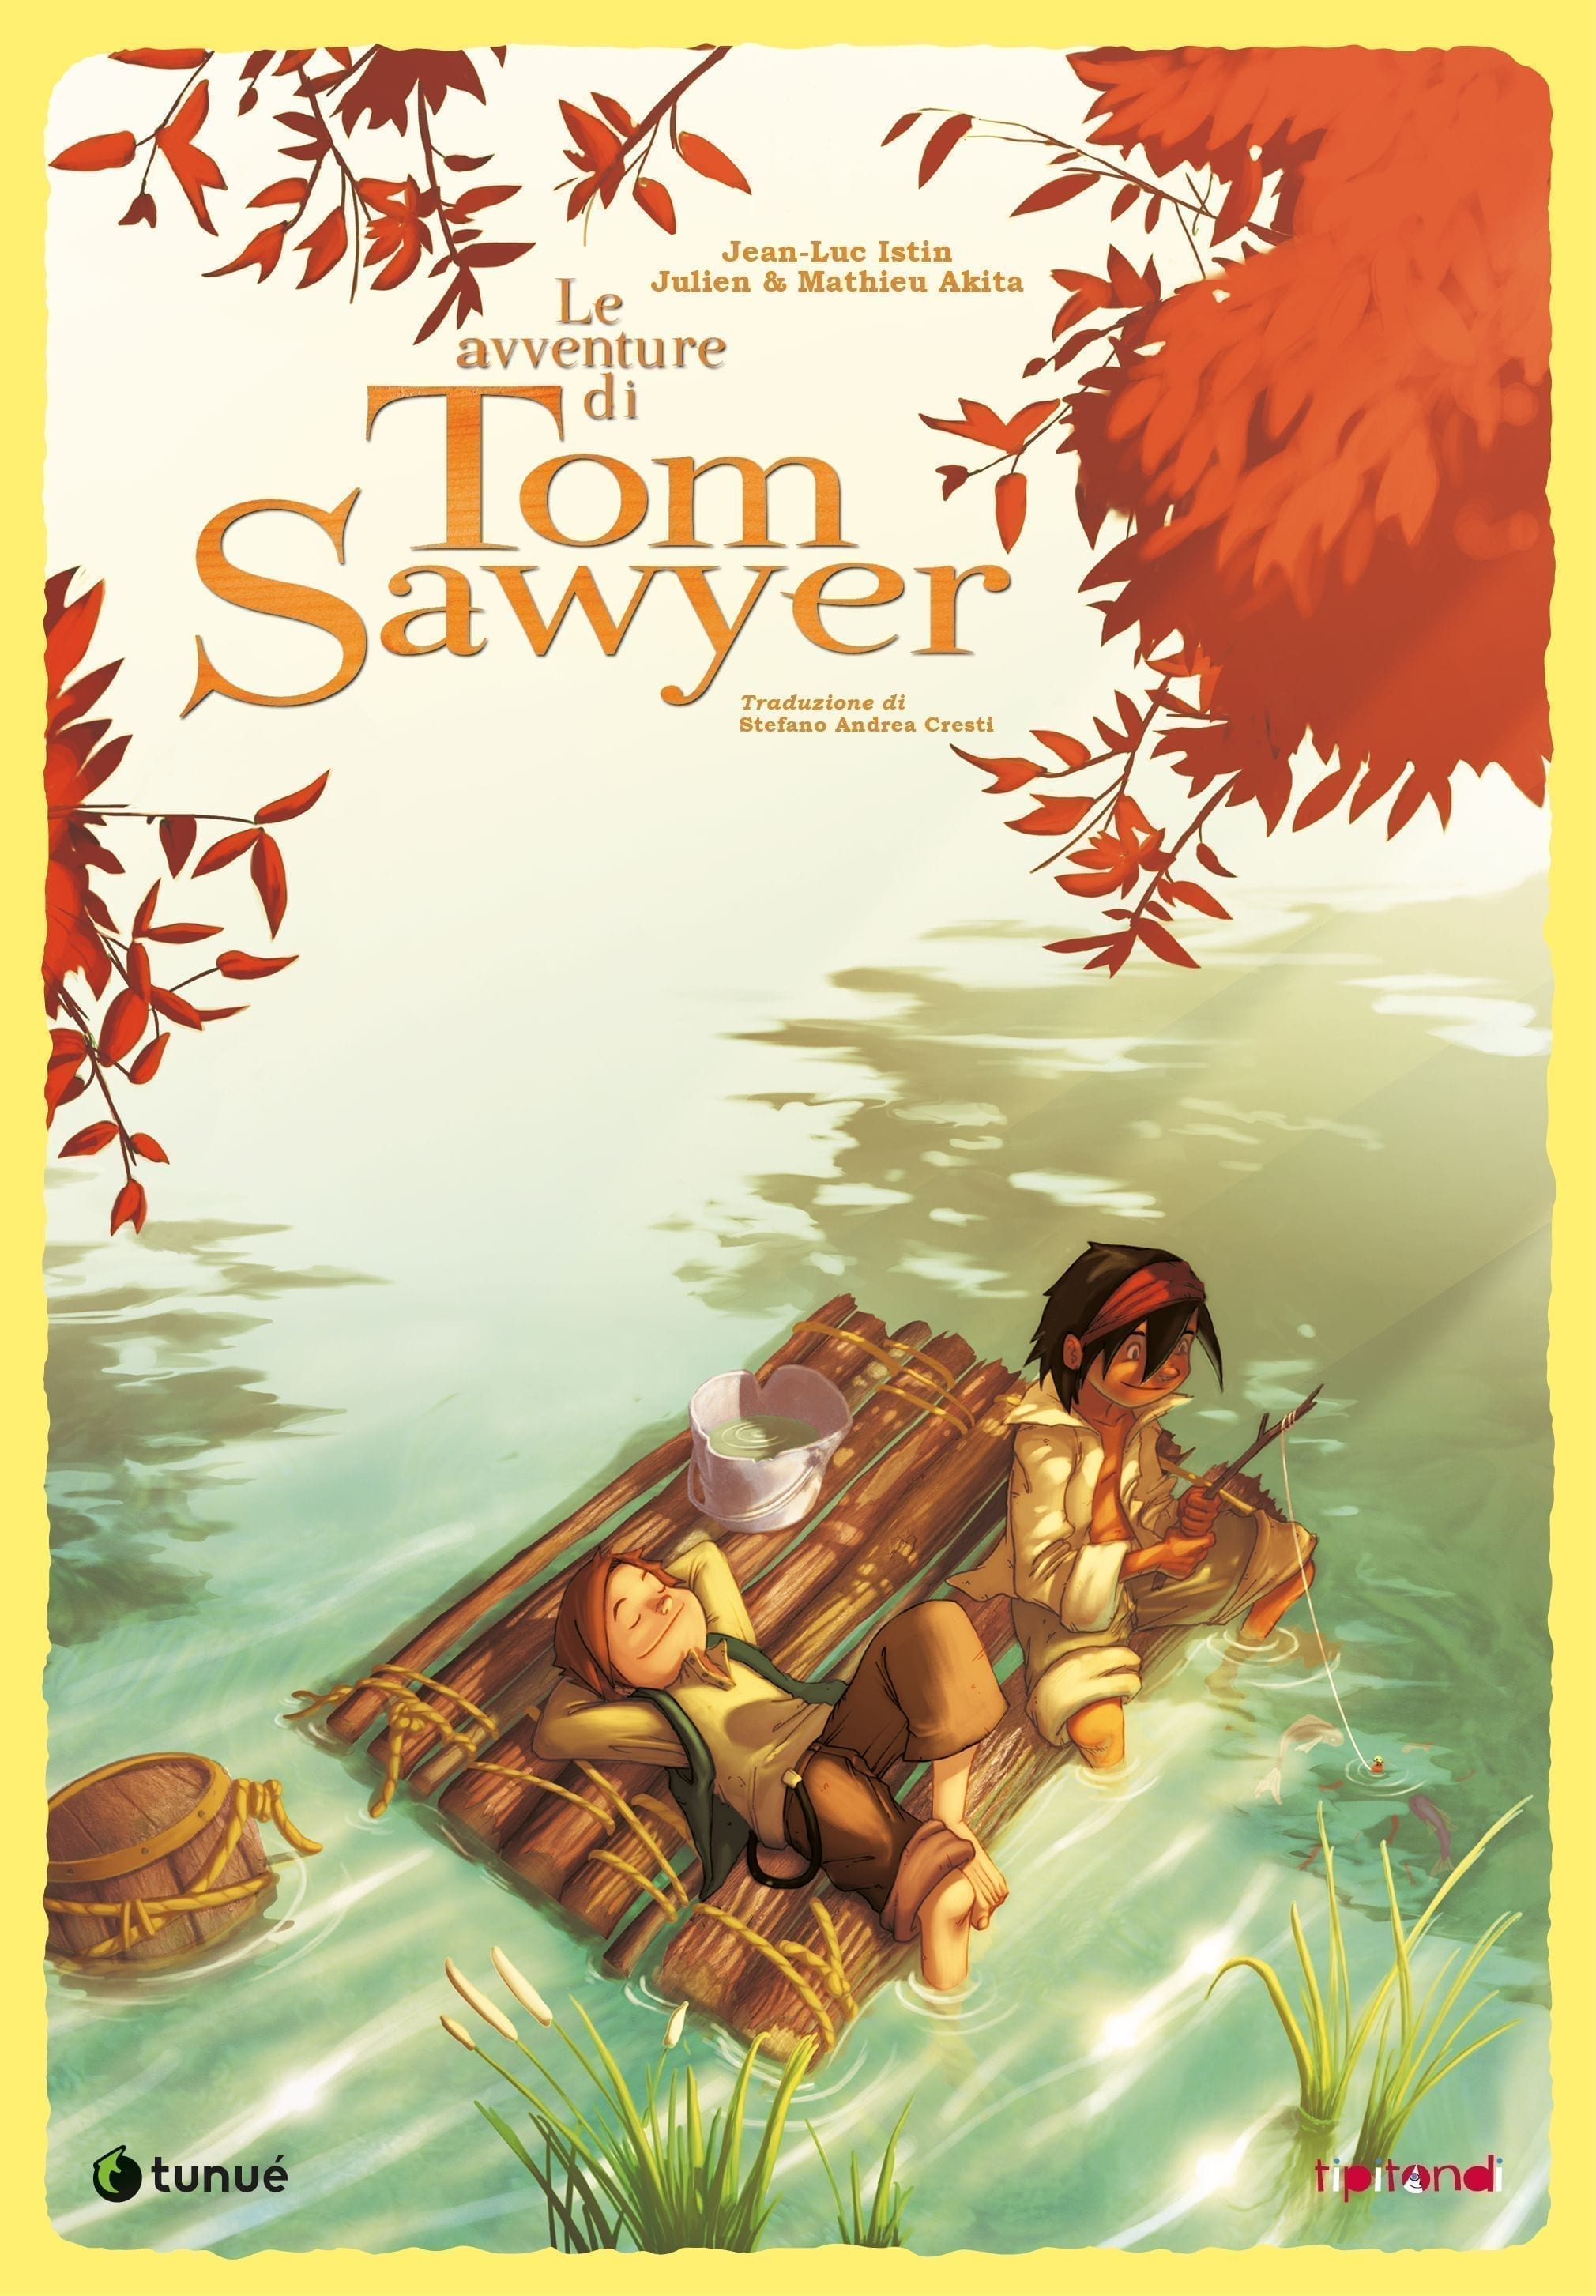 tom sawyer graphic novel tipitondi cover